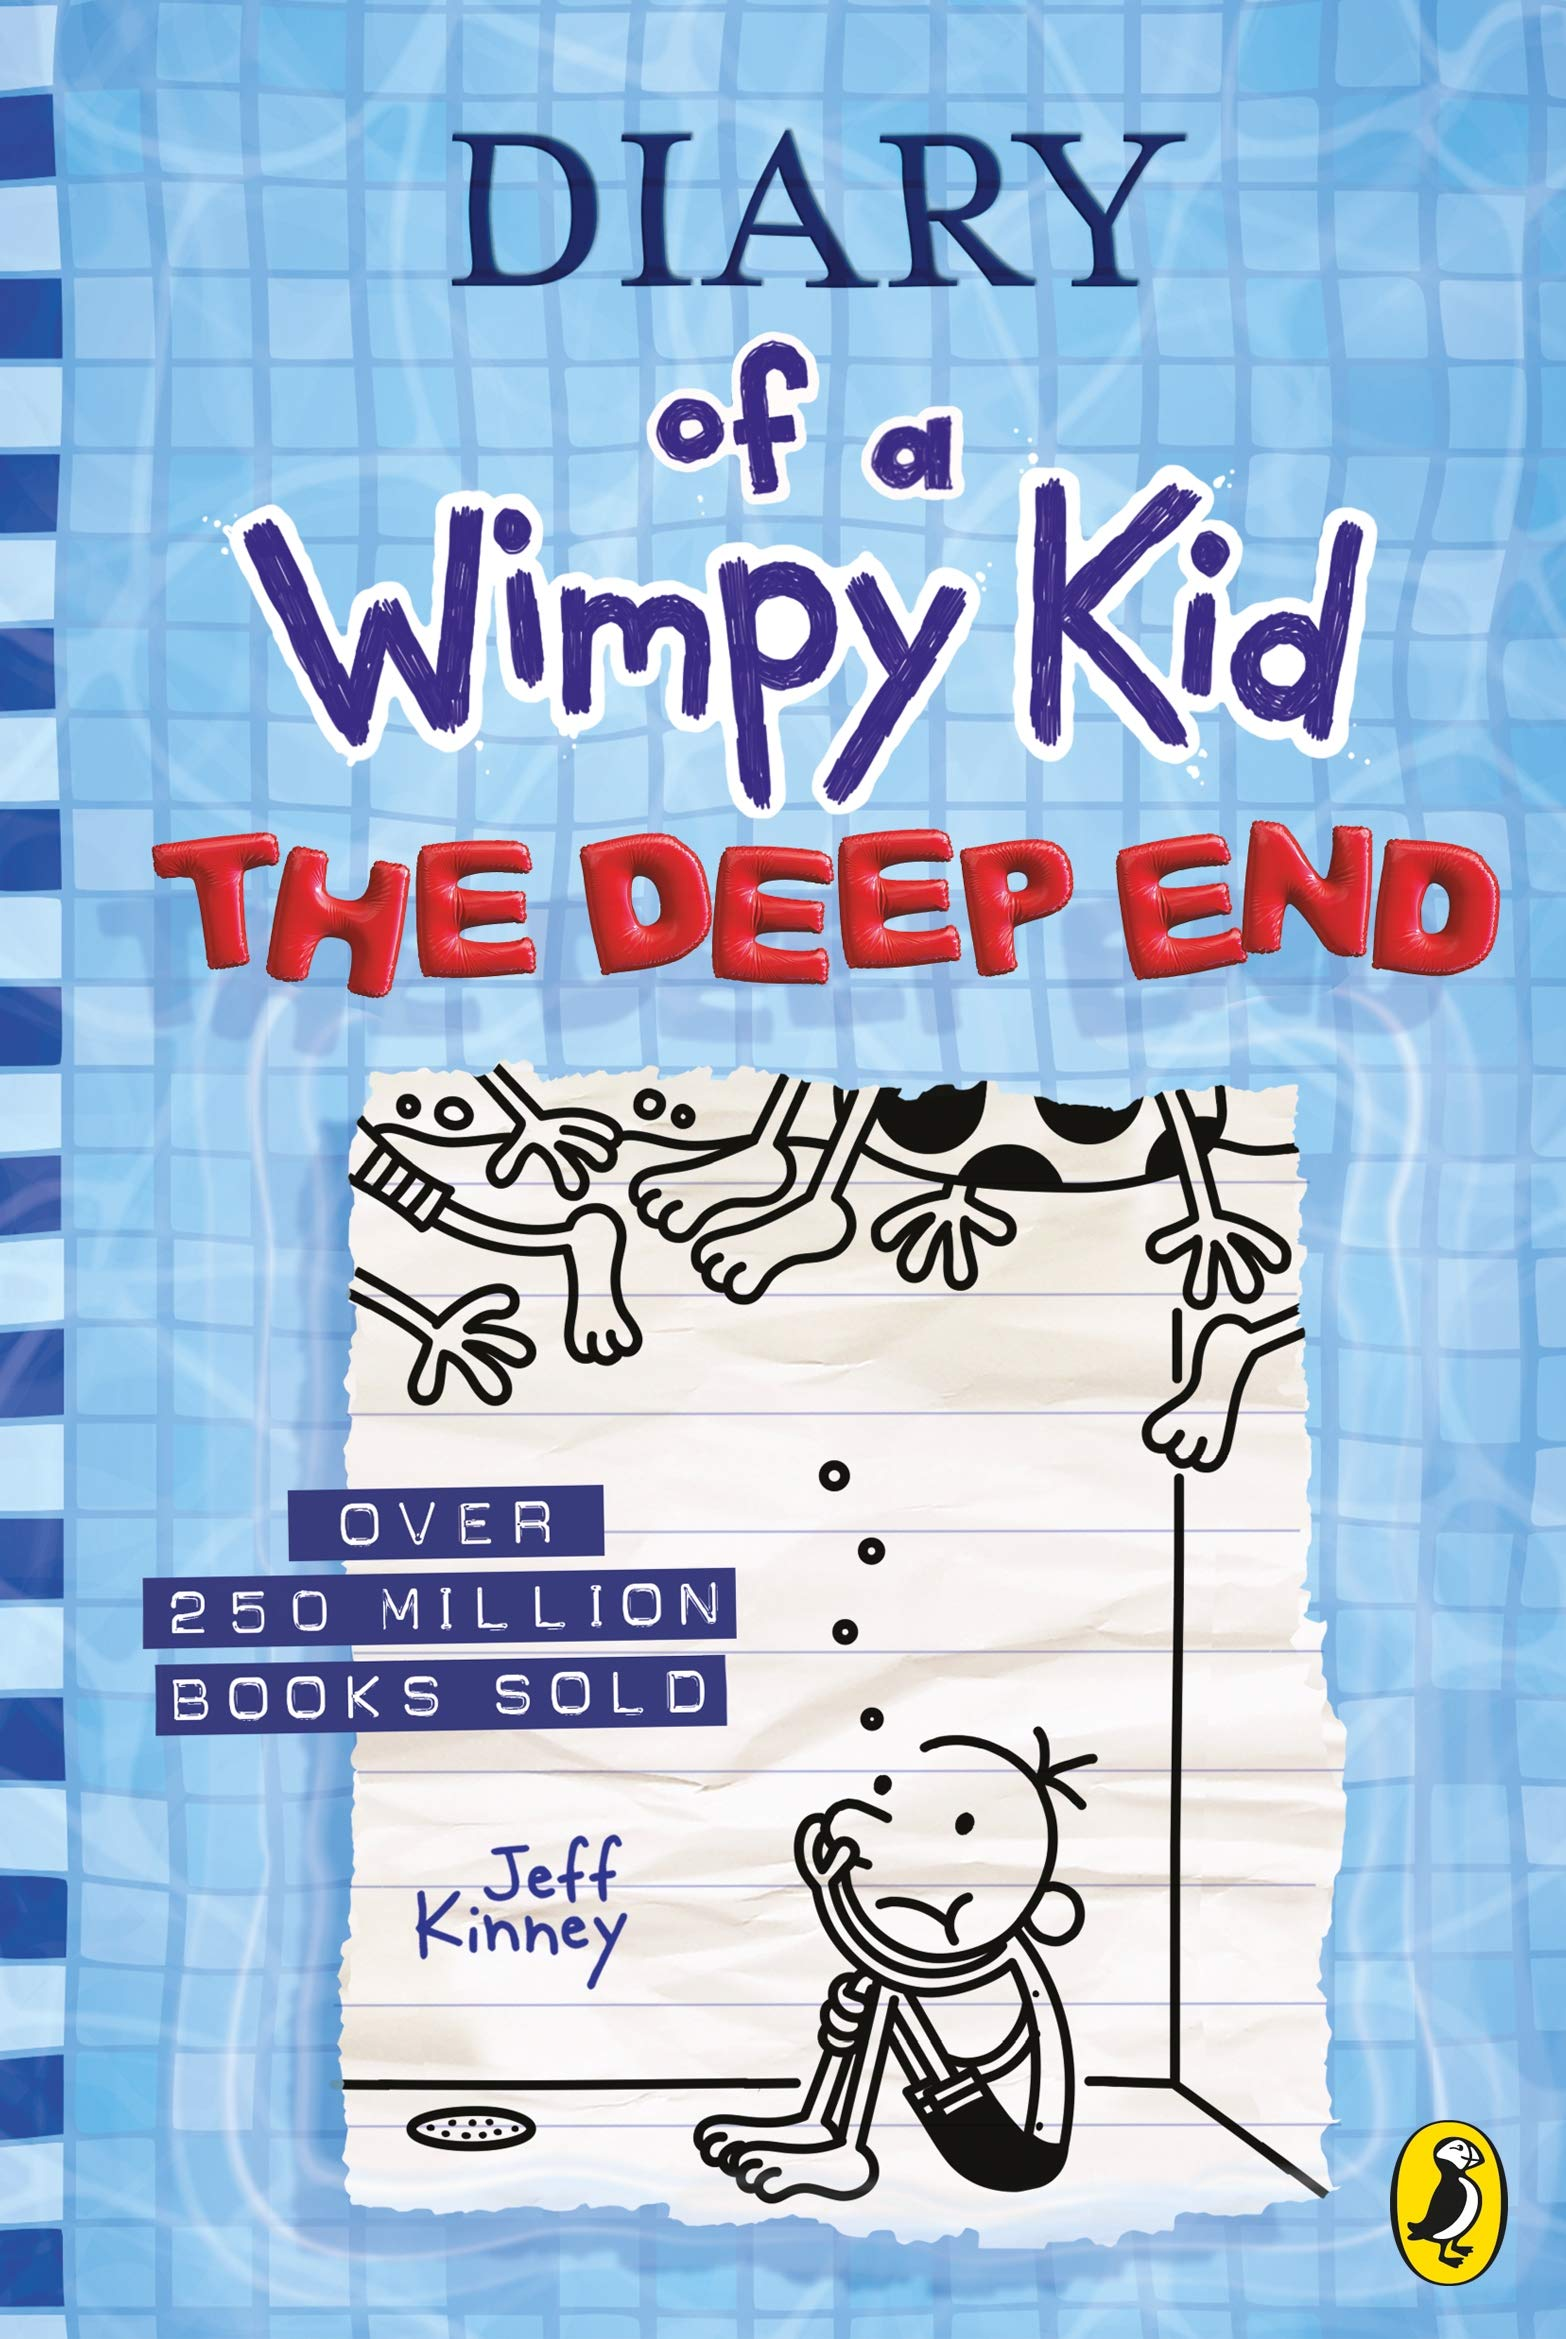 Diary of a Wimpy Kid: The Deep End (Book 15) – Diary of a Wimpy Kid by Jeff Kinney | 9780241396643